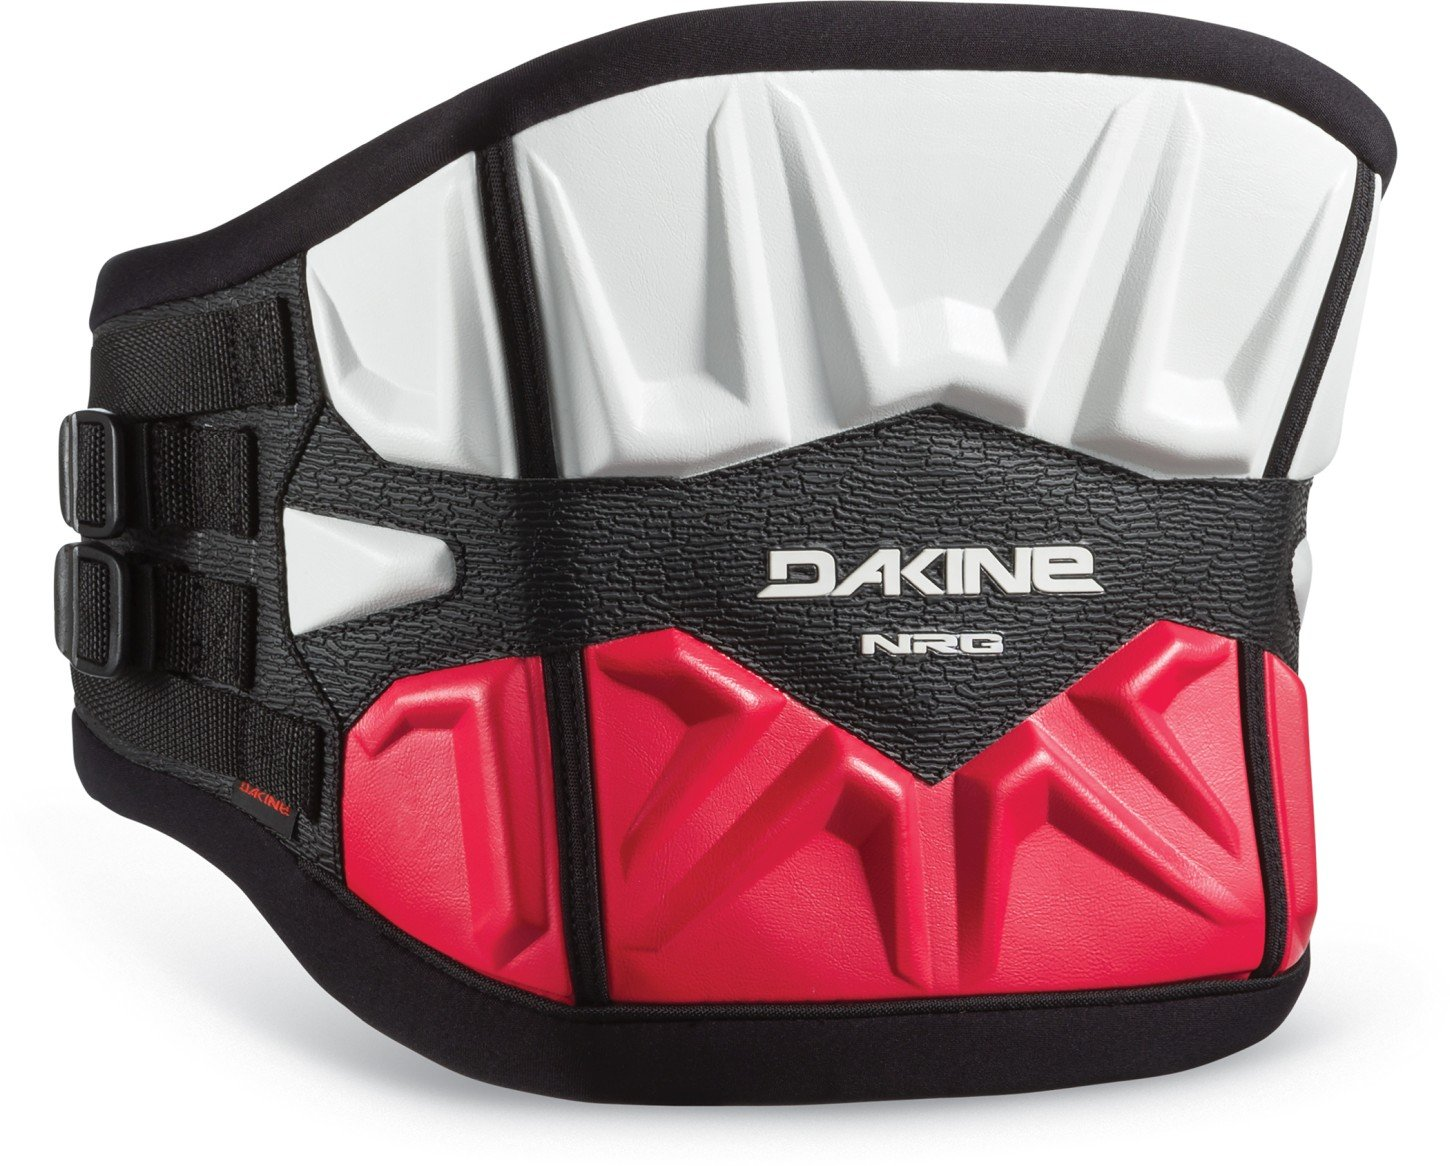 Dakine Men's Hybrid NRG Windsurf Harness, Red, XS by Dakine